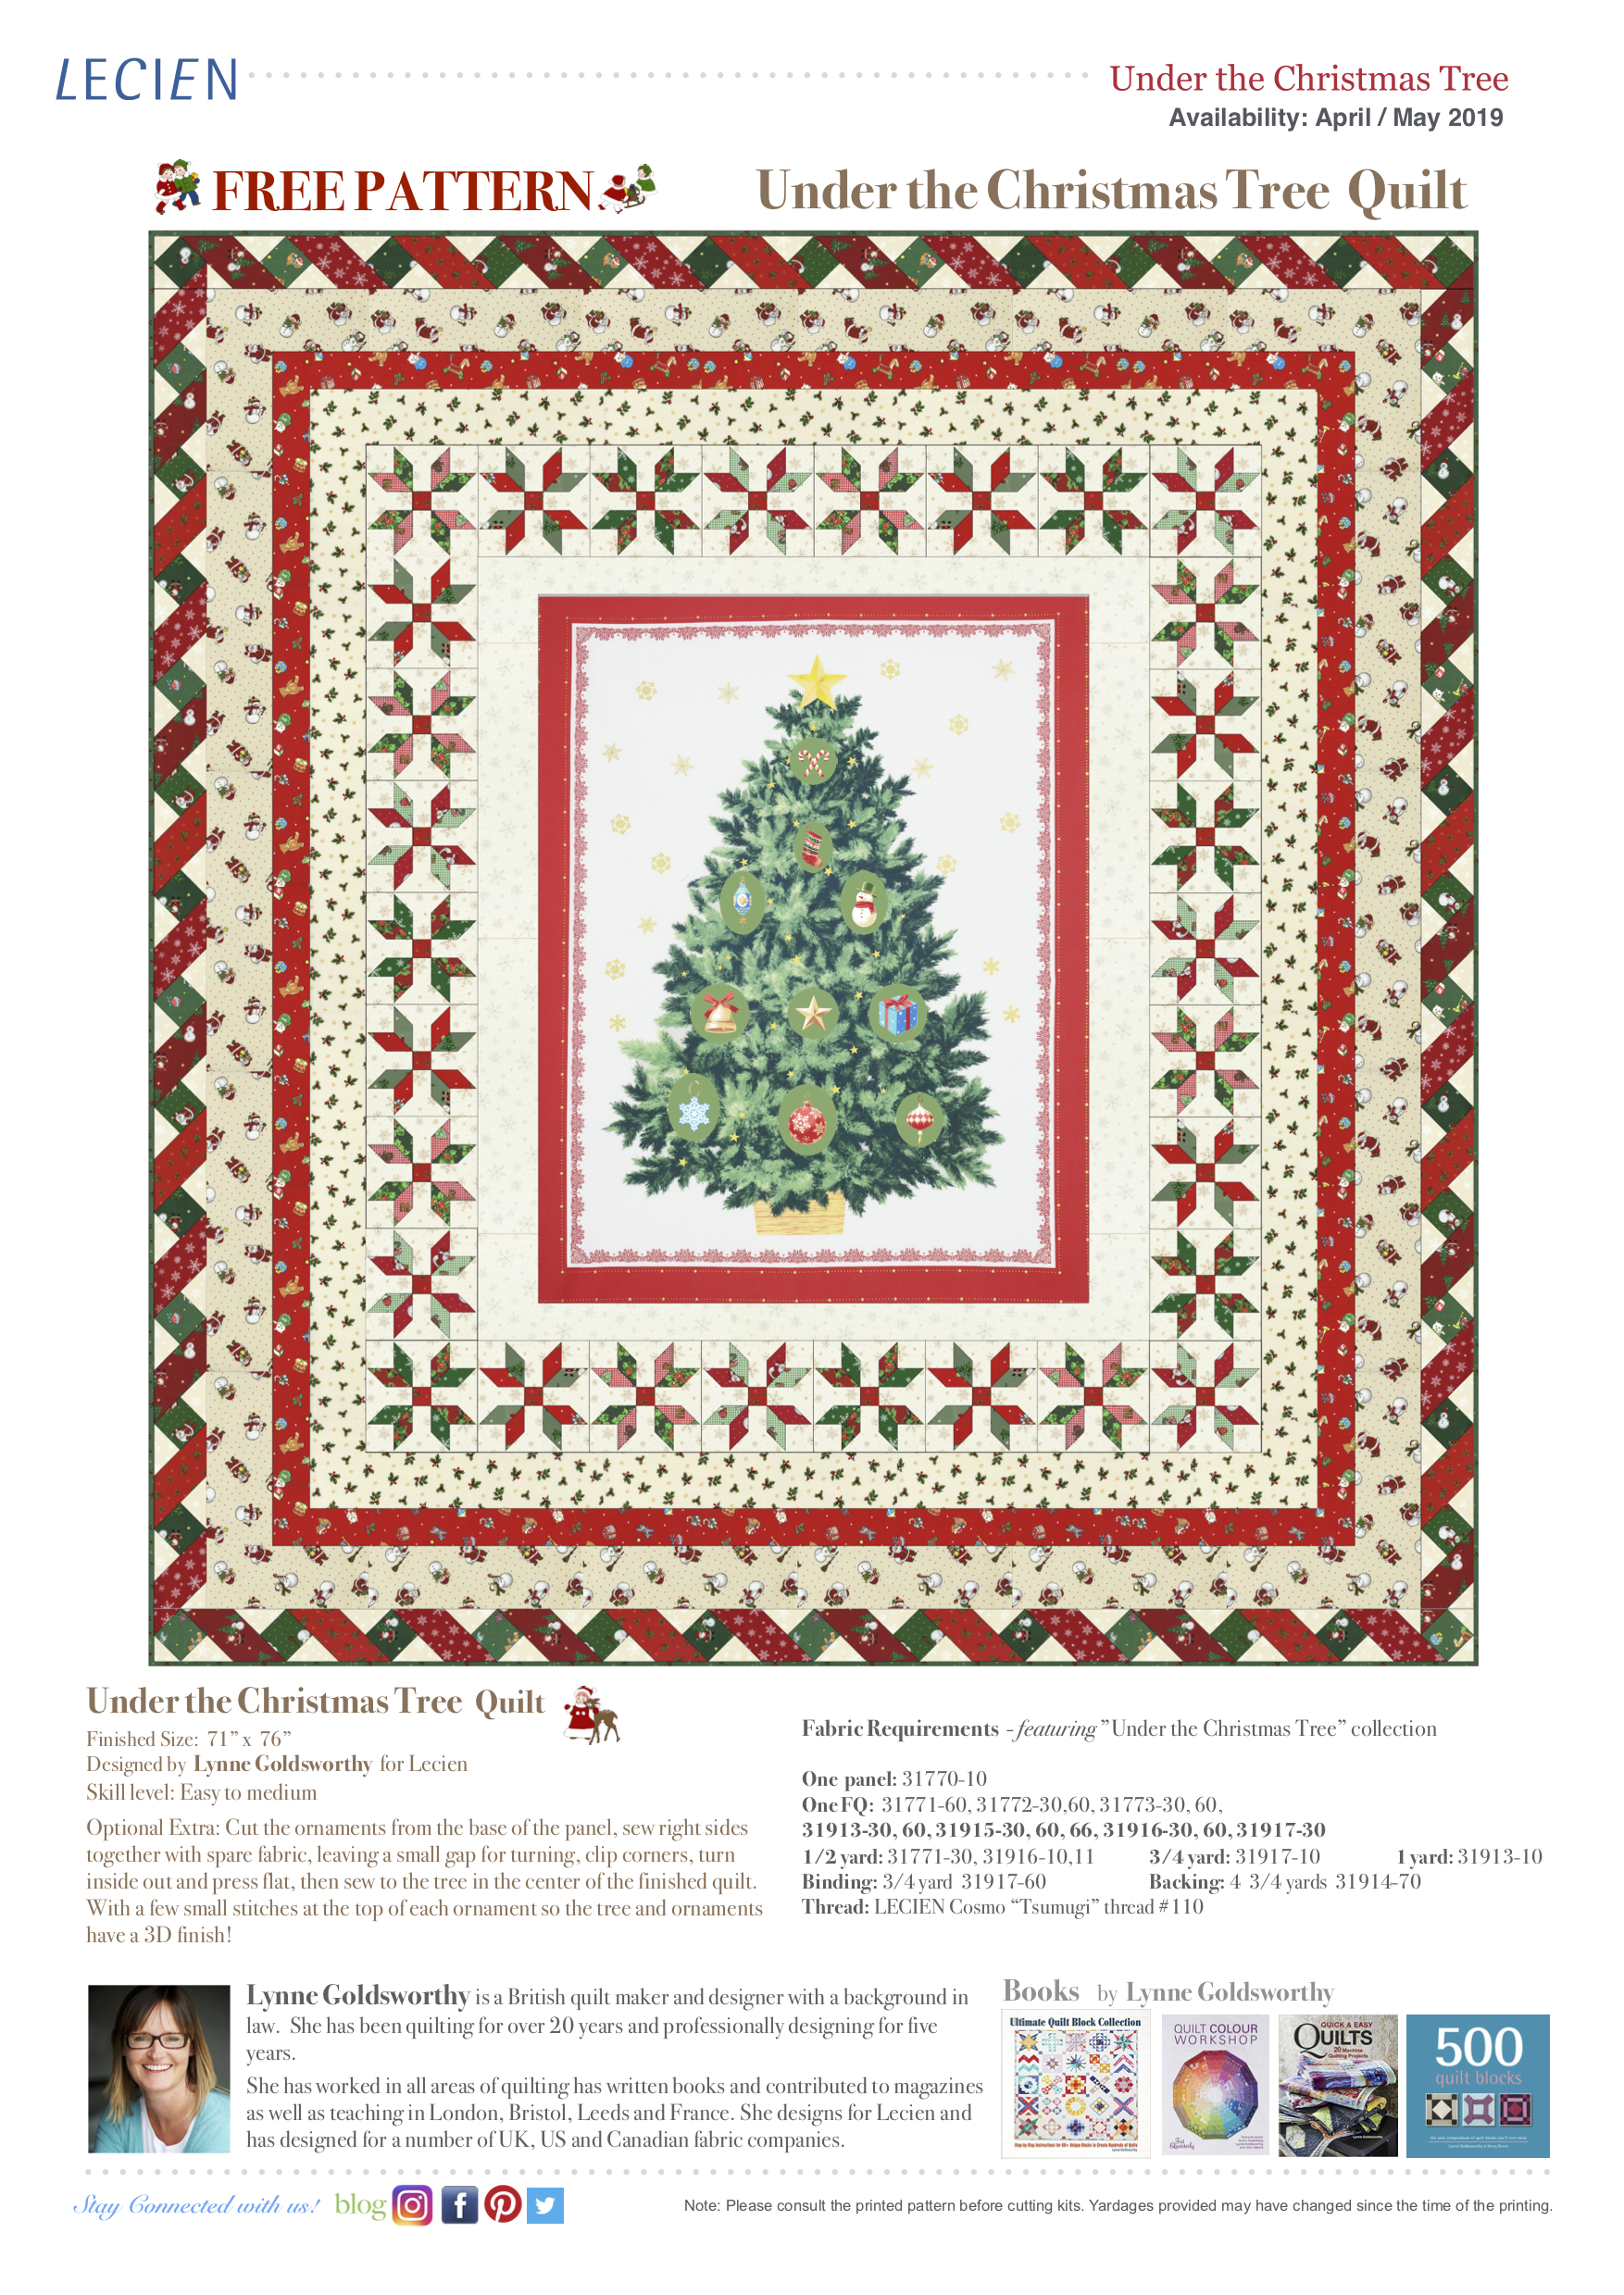 Under the Christmas Tree Quilt